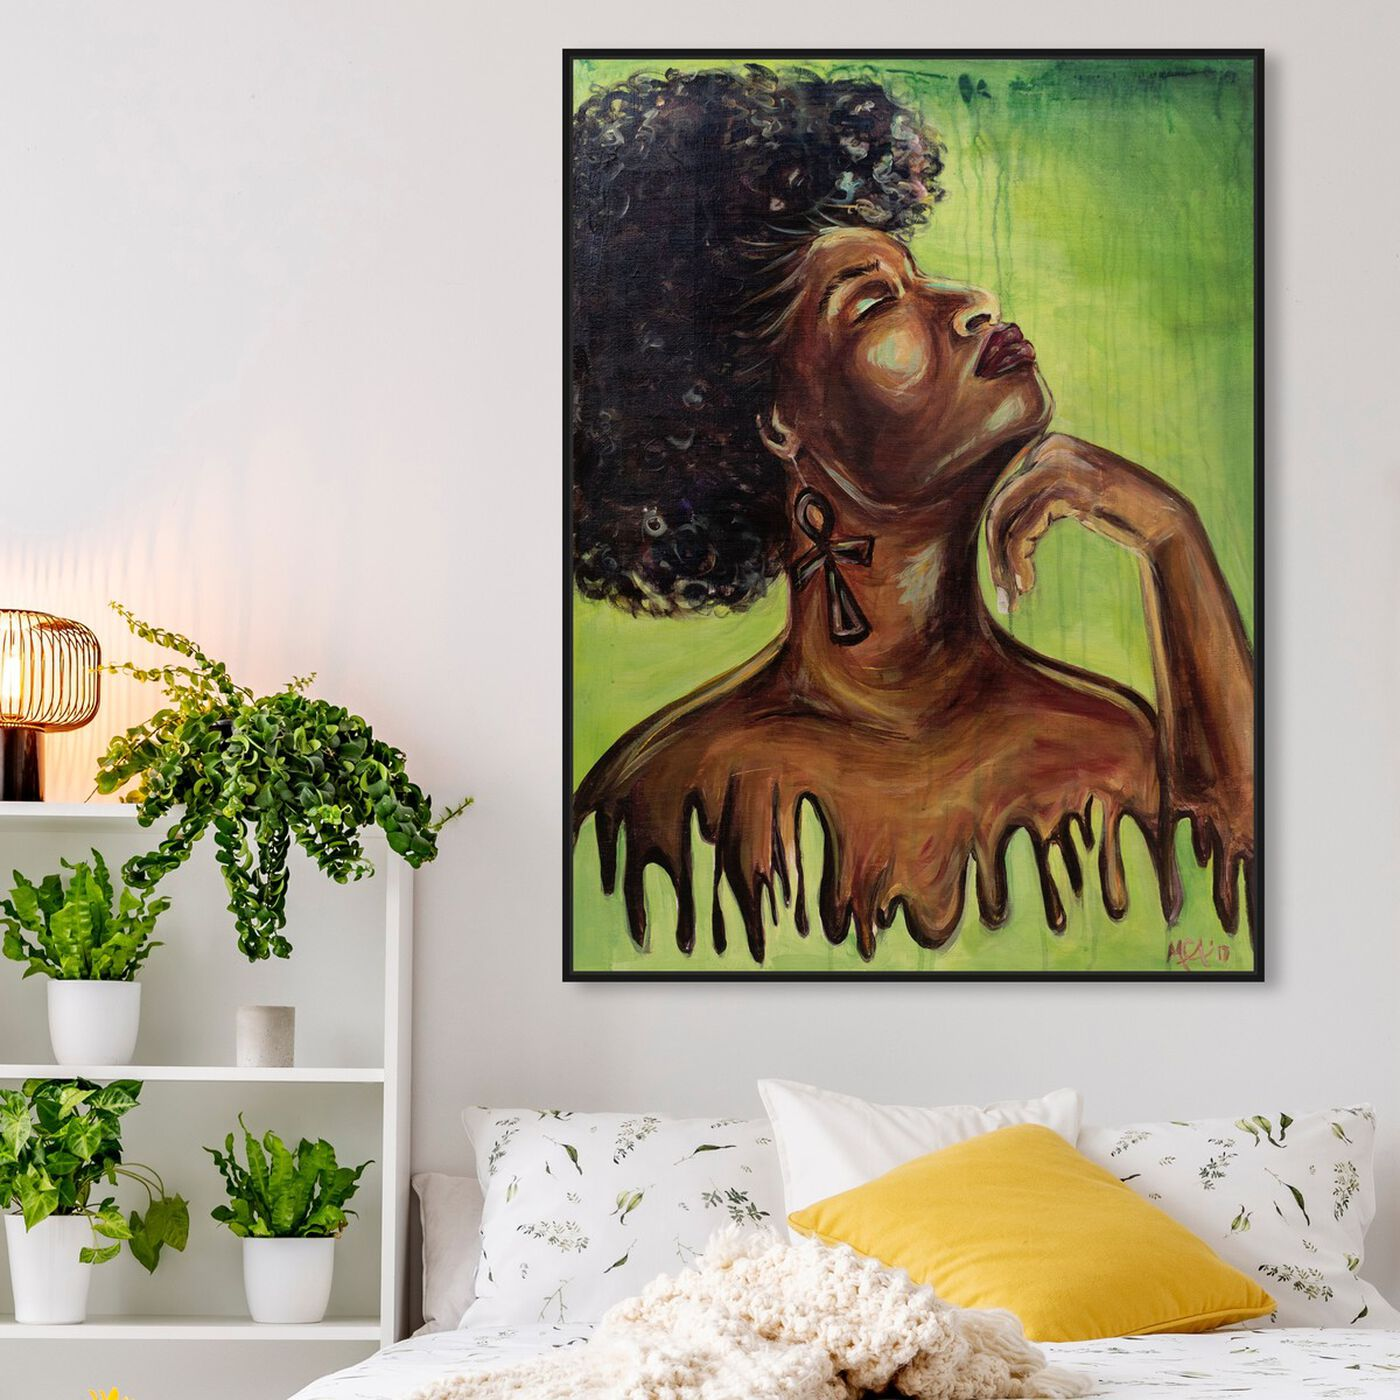 Hanging view of Marissa Anderson - Dripping Melanin featuring people and portraits and portraits art.